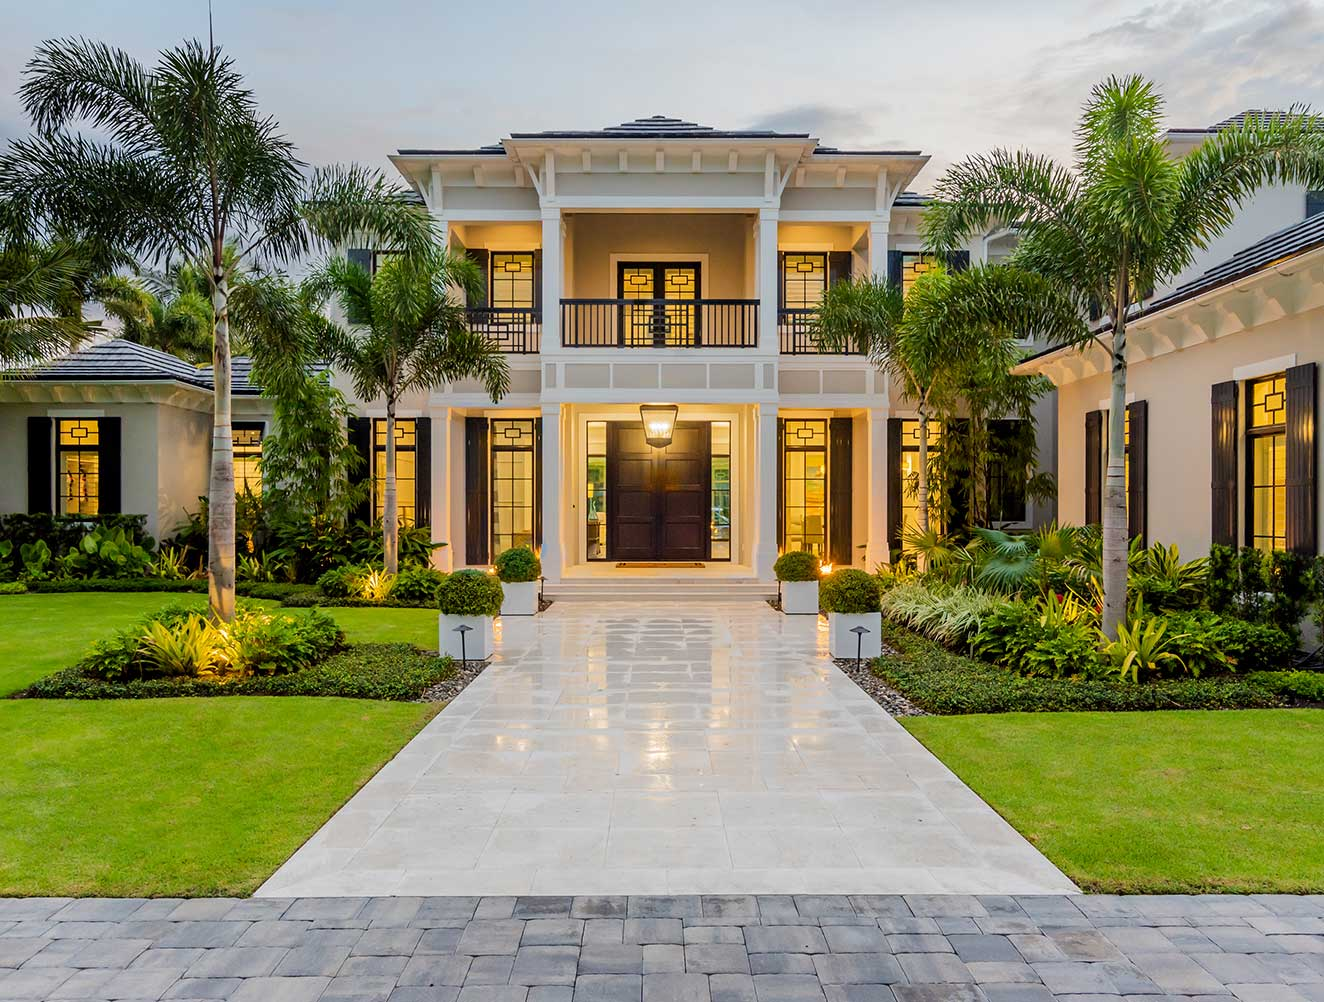 Entrance of Fort Charles Estate in Naples Florida, single family home designed by Kukk Architecture & Design Naples Architecture Firm